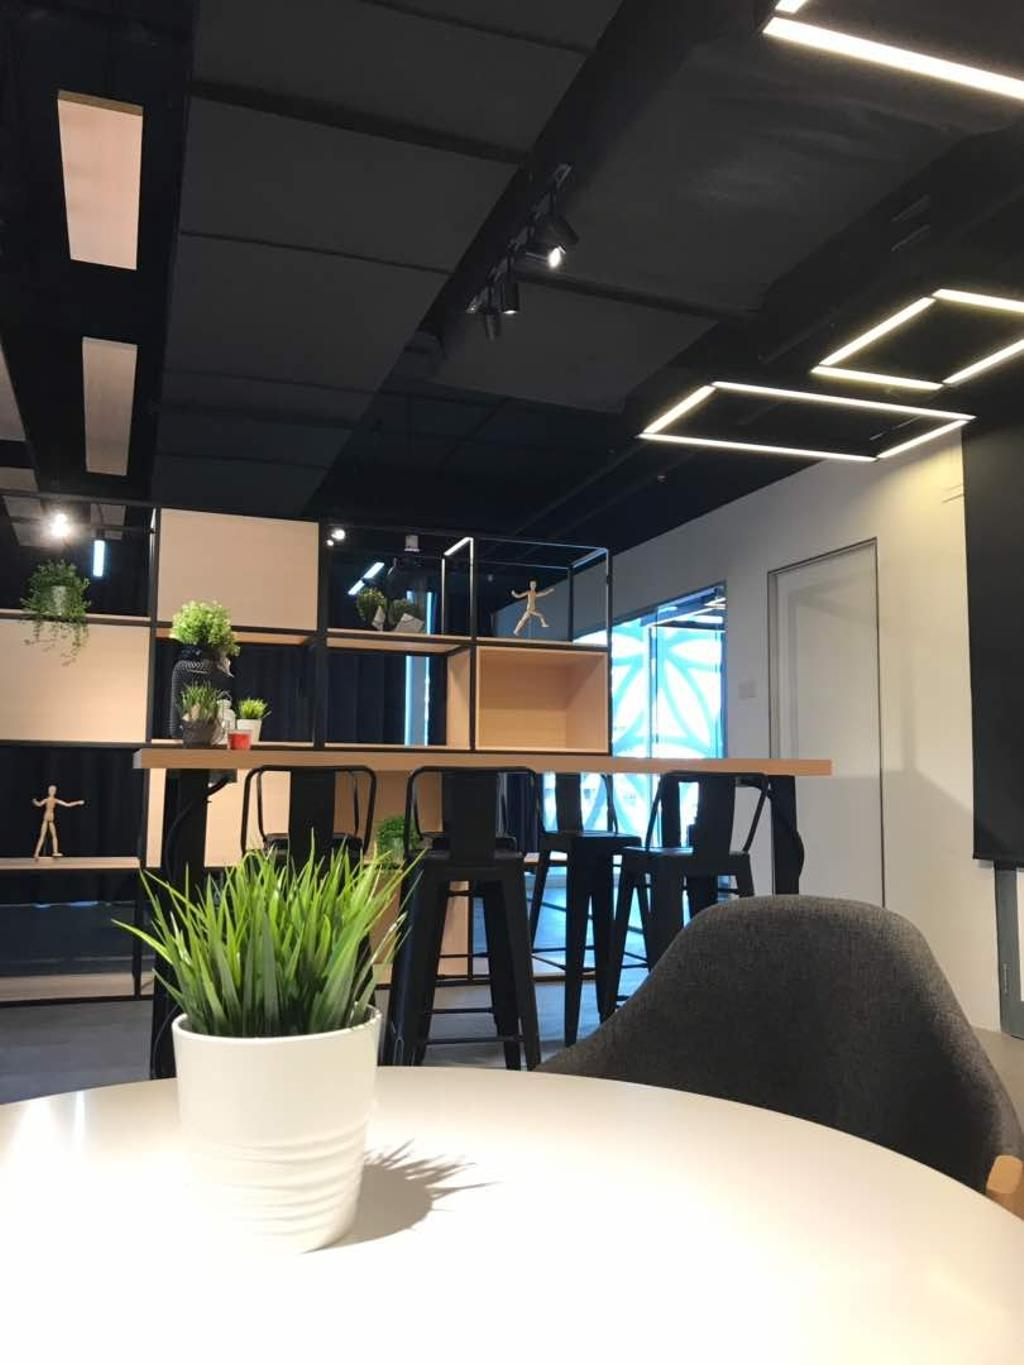 We Pays Office, Mahkota Parade, Commercial, Interior Designer, Trivia Group Sdn. Bhd., Modern, Contemporary, Flora, Jar, Plant, Potted Plant, Pottery, Vase, Chair, Furniture, Dining Room, Indoors, Interior Design, Room, Apartment, Building, Housing, Loft